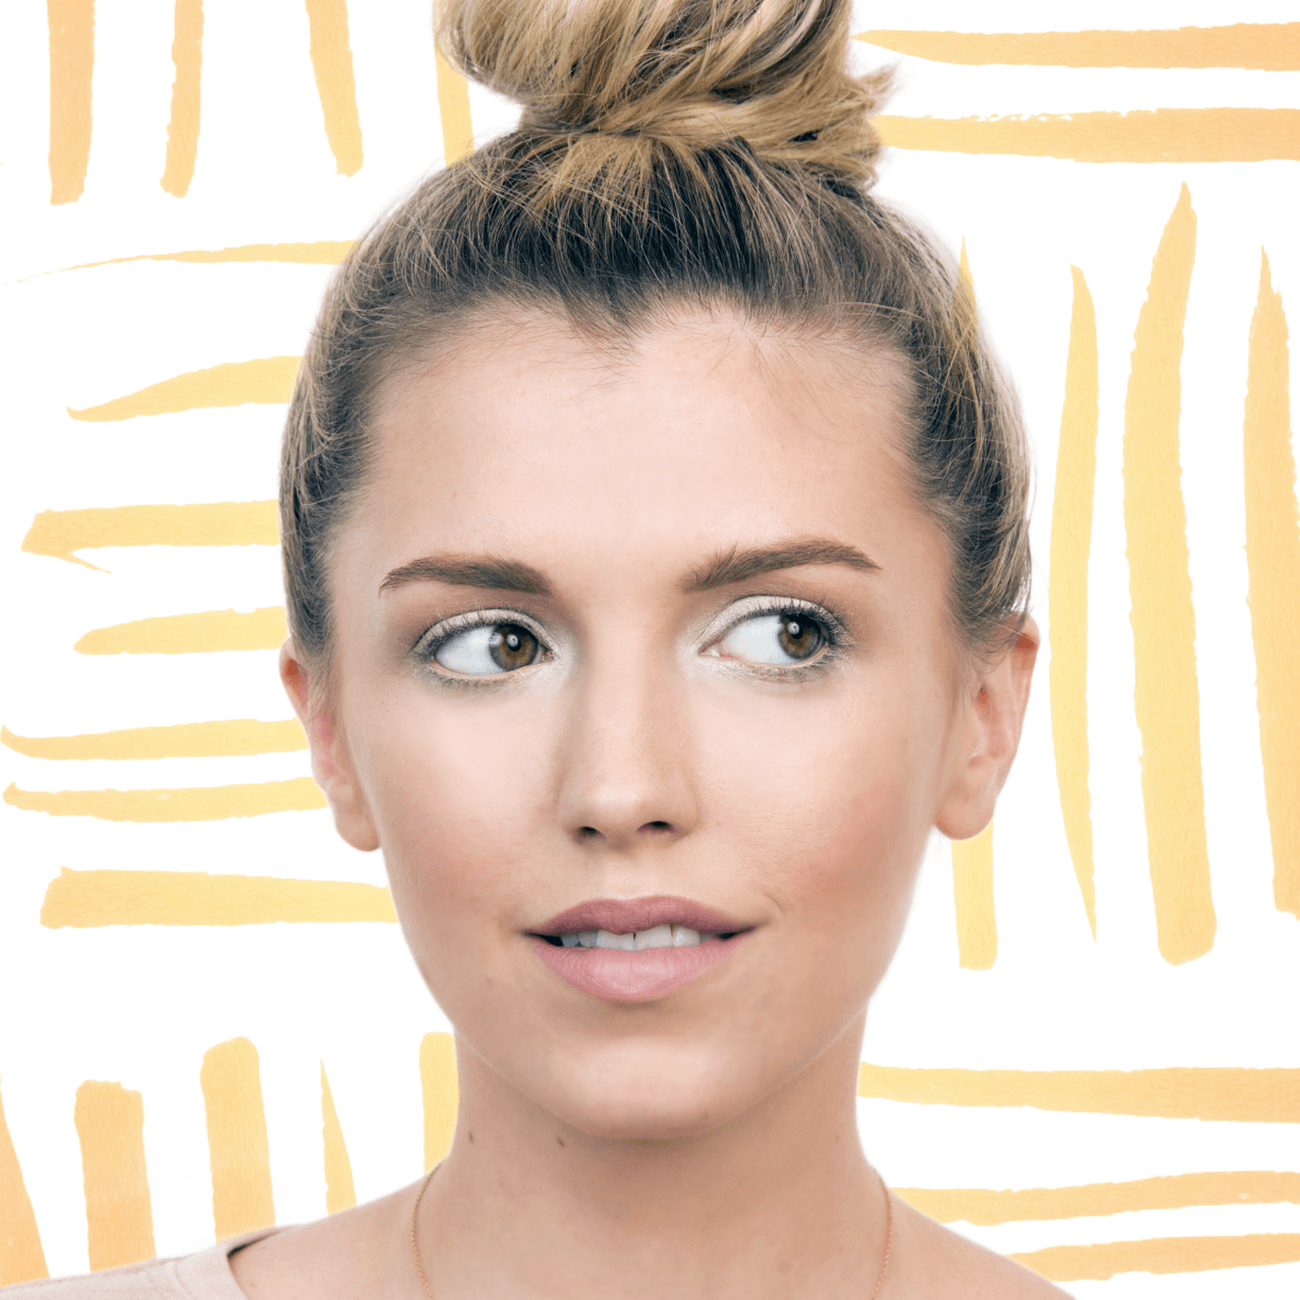 9 Easy Ways to Make Your Eyes Look Brighter With Makeup